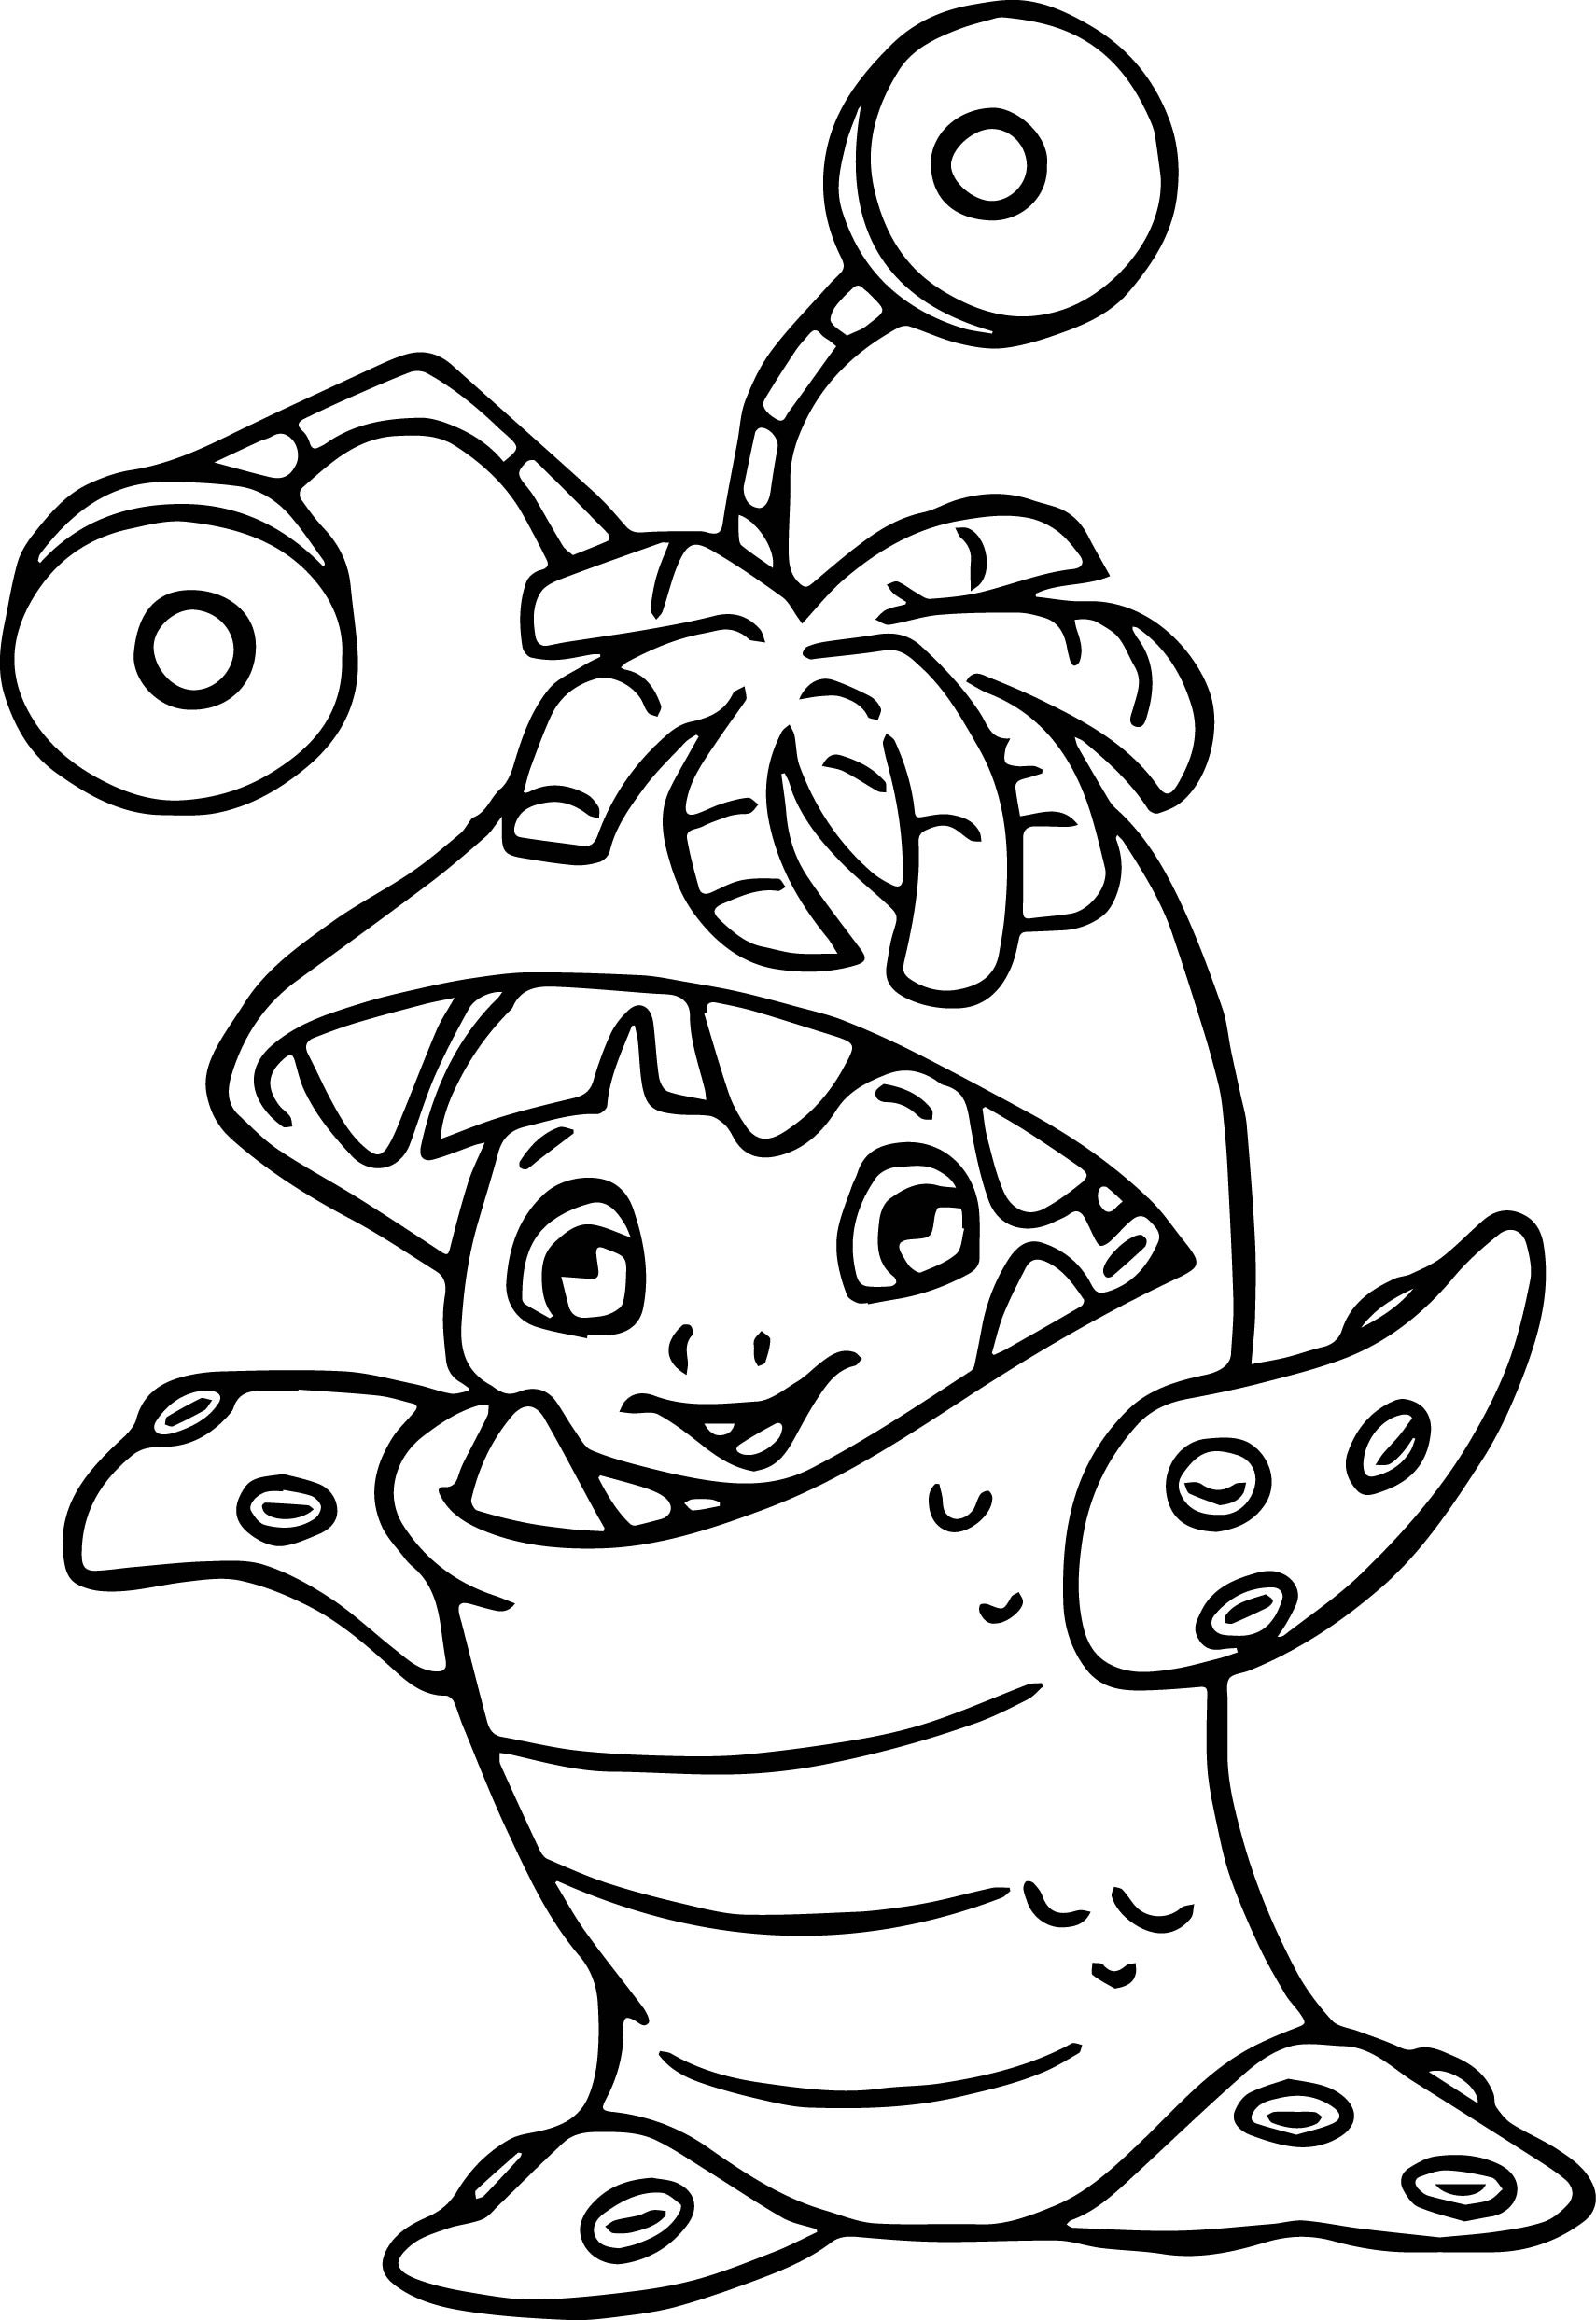 1710x2486 Coloring Pages Draw Monsters Free Draw To Color